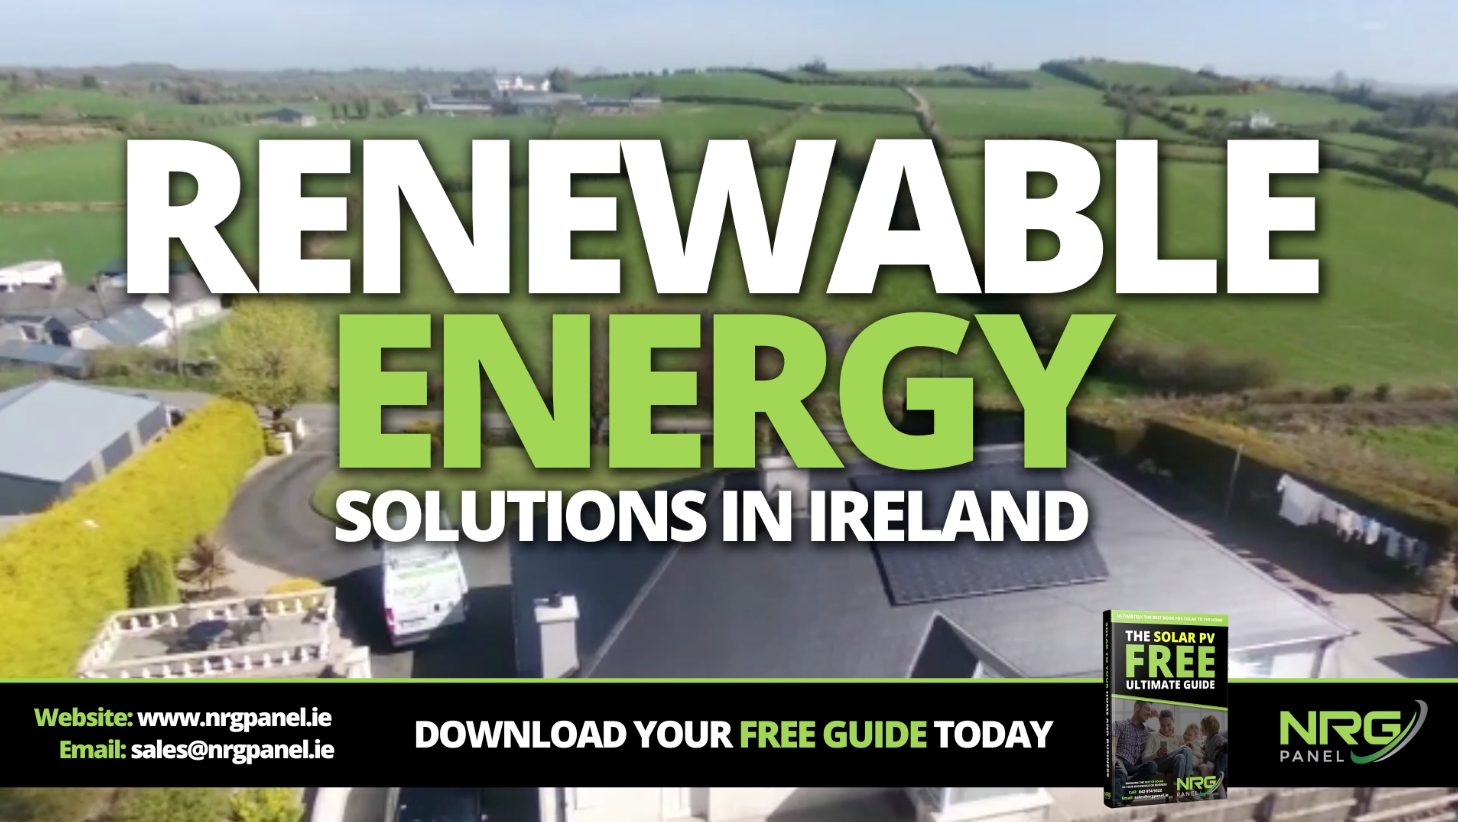 renewable energy solutions Ireland | NRG Panel